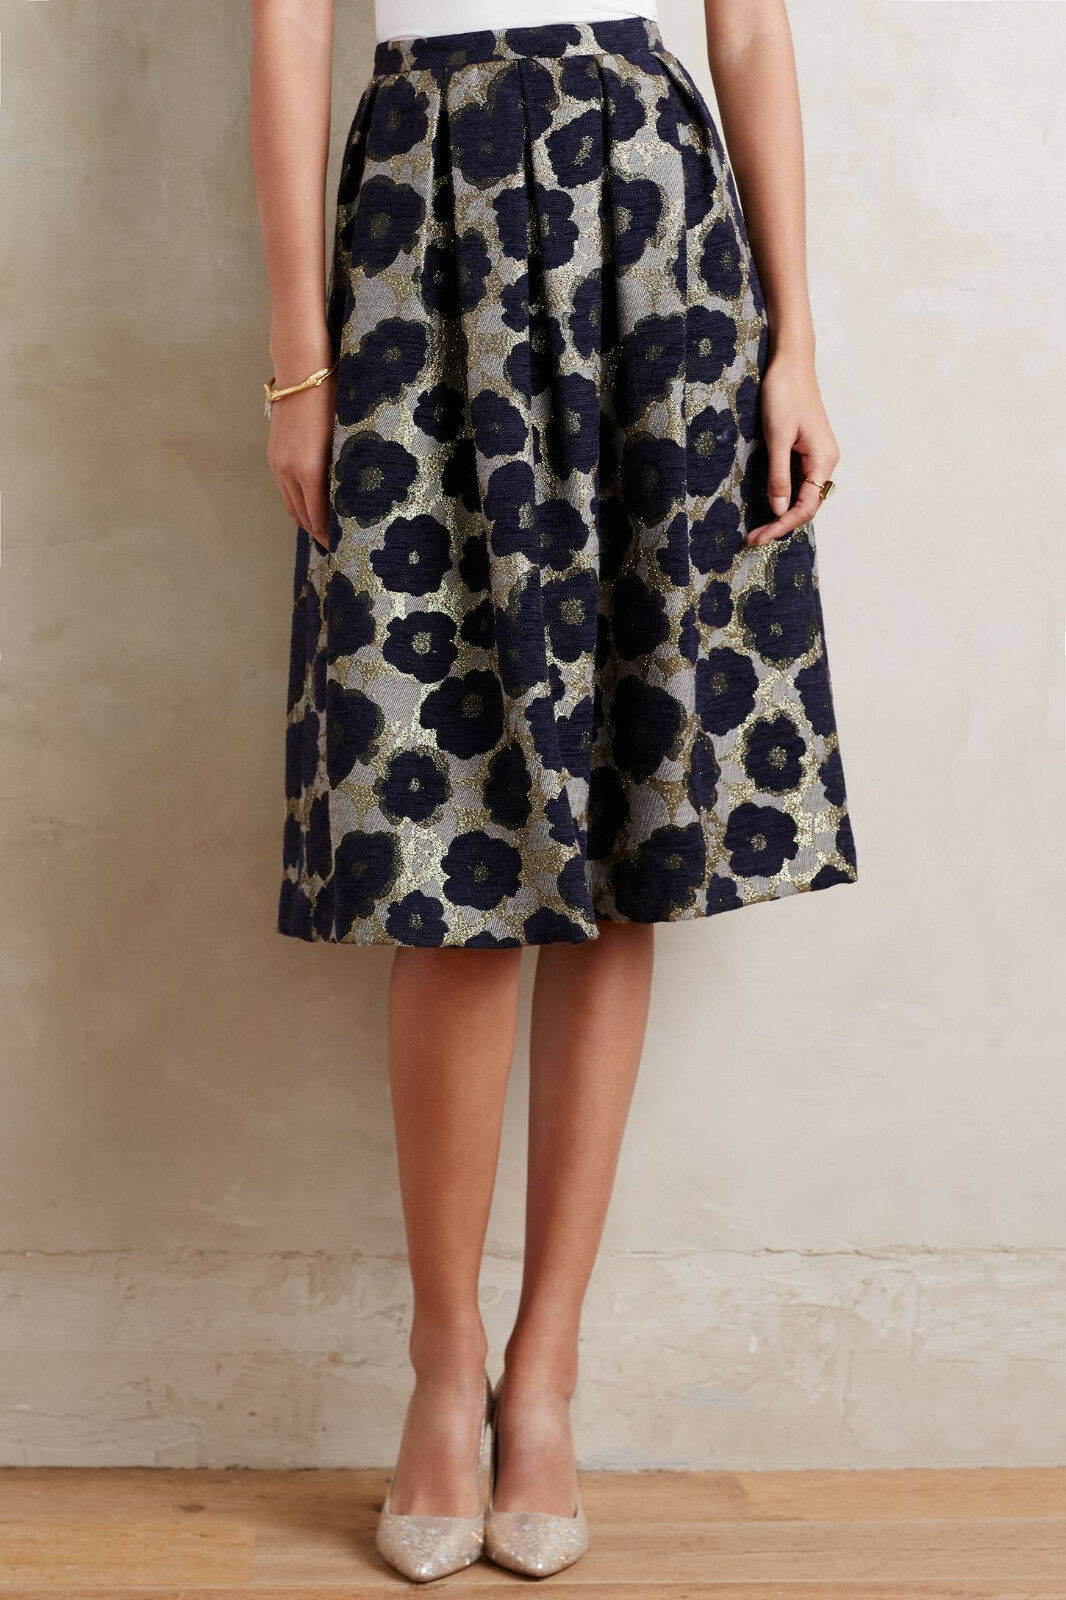 NWT ANTHROPOLOGIE DRESS GALLERY Floral Brocade Midi Skirt size S bluee Motif  298